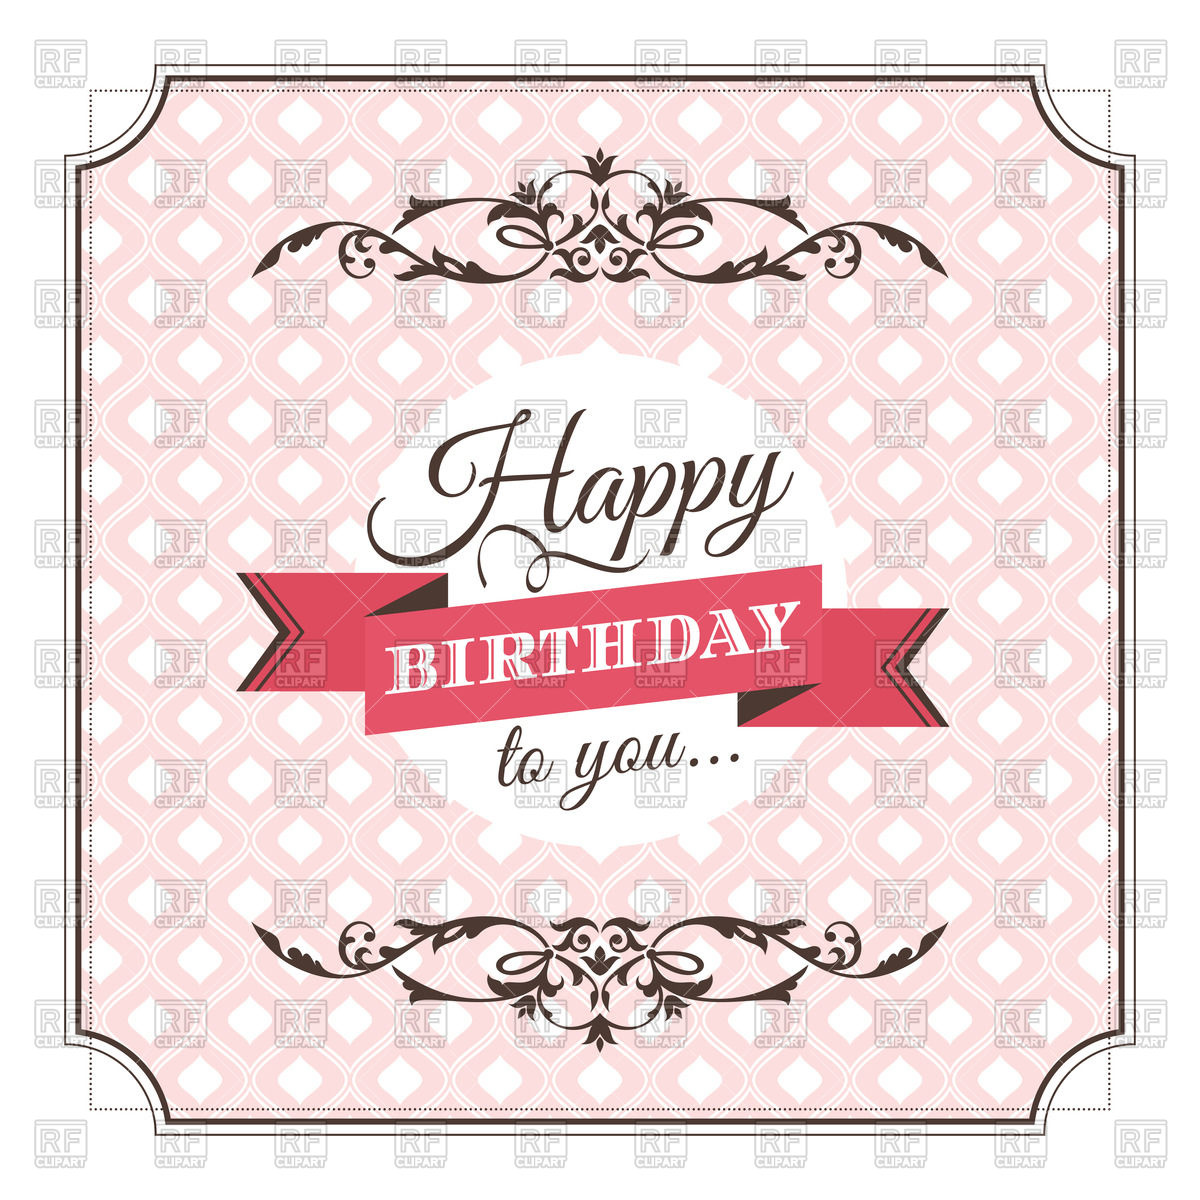 clipart of birthday cards ; vintage-pink-birthday-card-Download-Royalty-free-Vector-File-EPS-129597